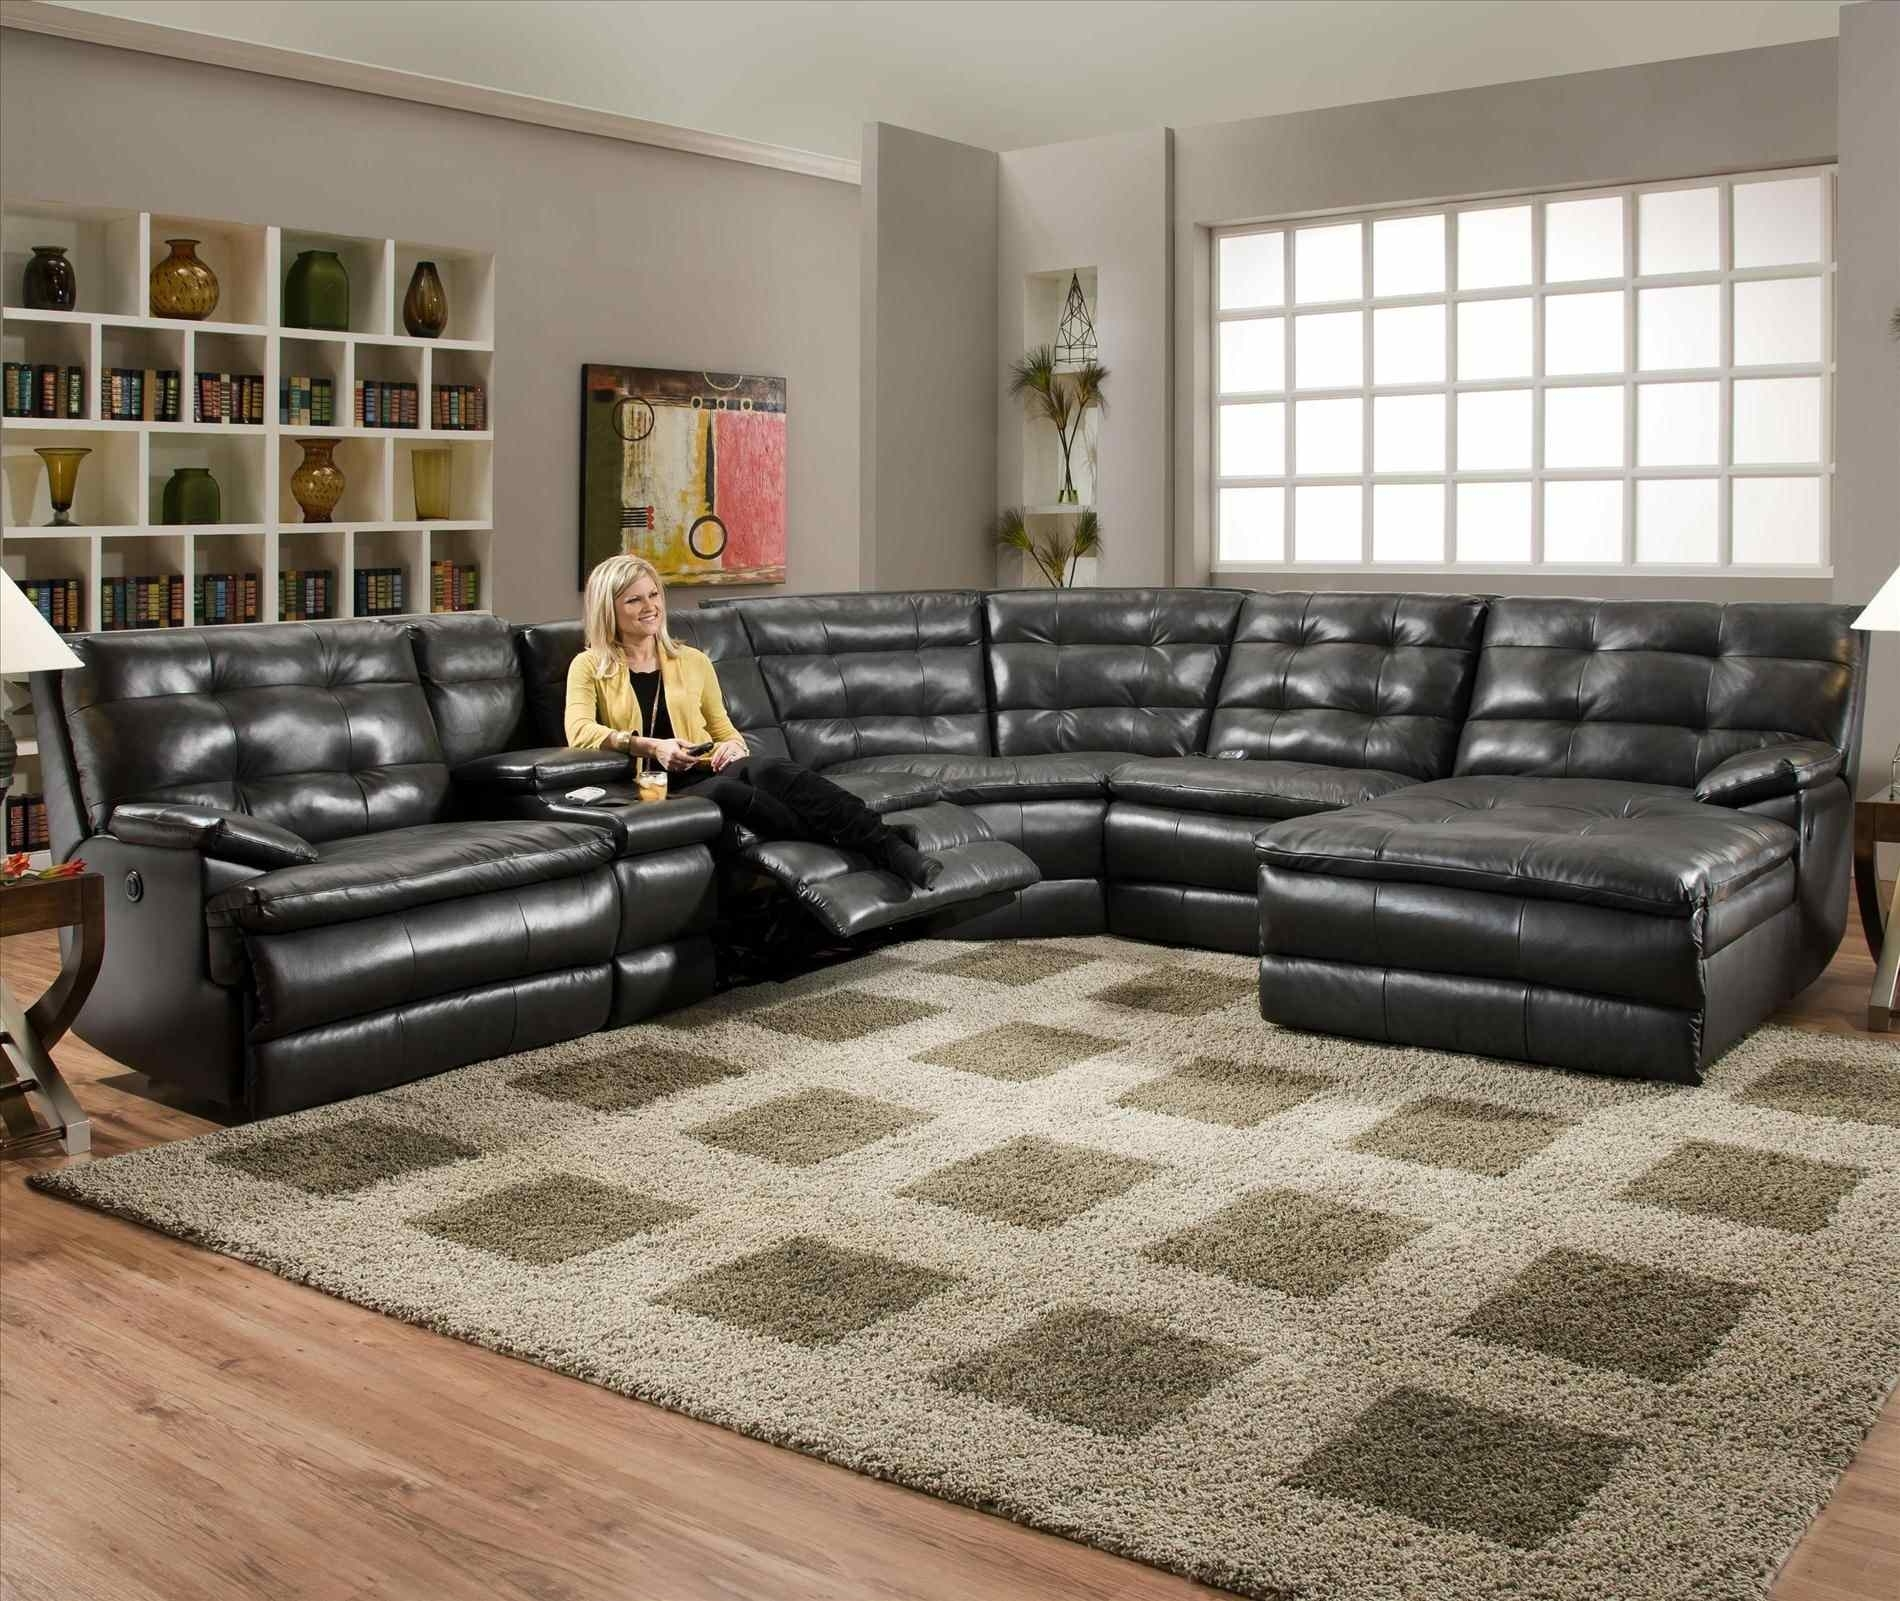 Couch : Furniture Bad Boy Sectional Es Wrap Around Couch Furniture For Sectional Sofas At Bad Boy (View 10 of 10)